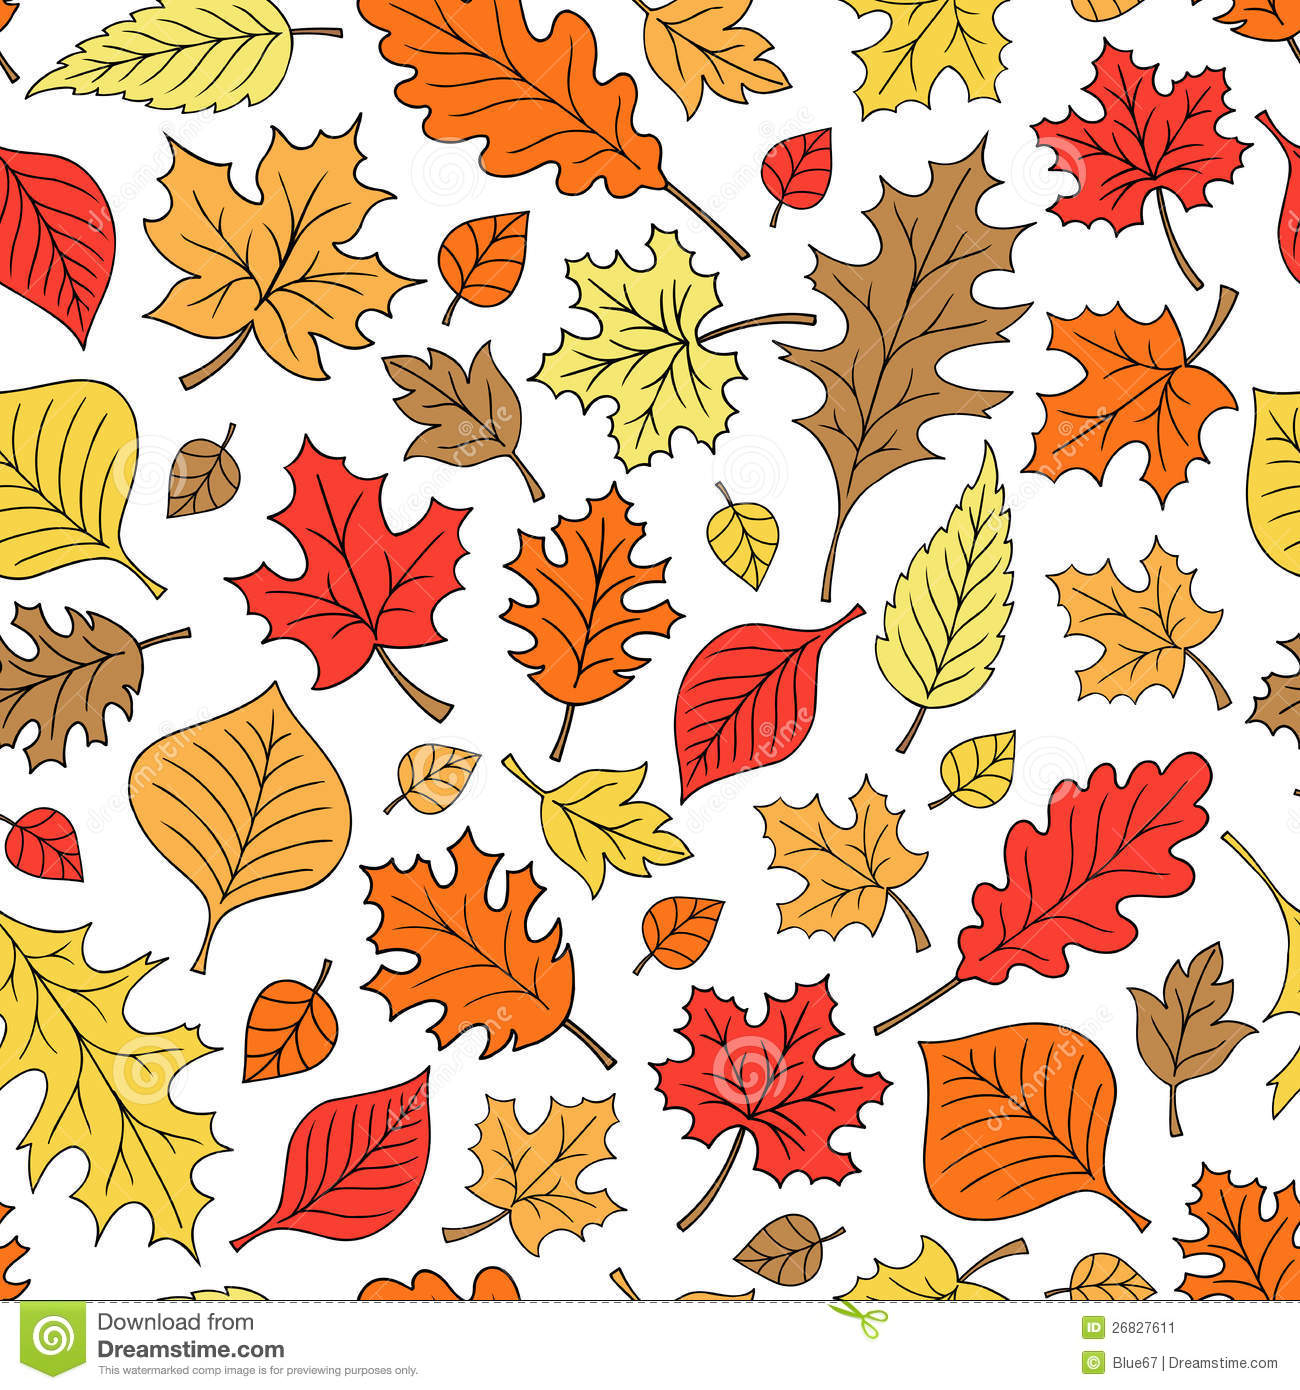 Cute Fall Wallpaper Iphone Seamless Autumn Fall Leaves Pattern Vector Stock Vector